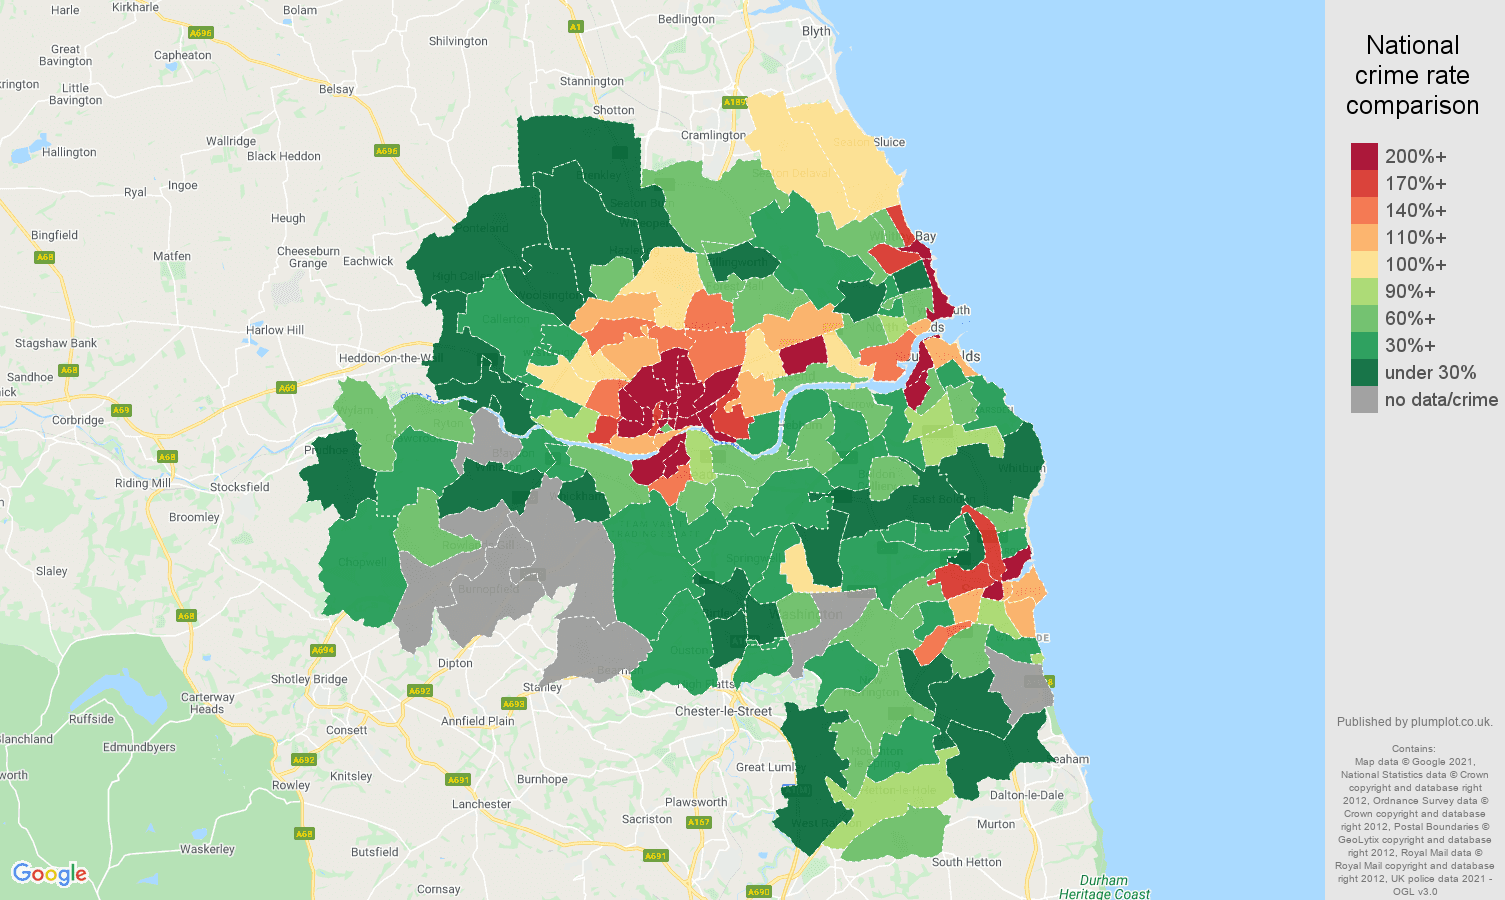 Tyne and Wear bicycle theft crime rate comparison map